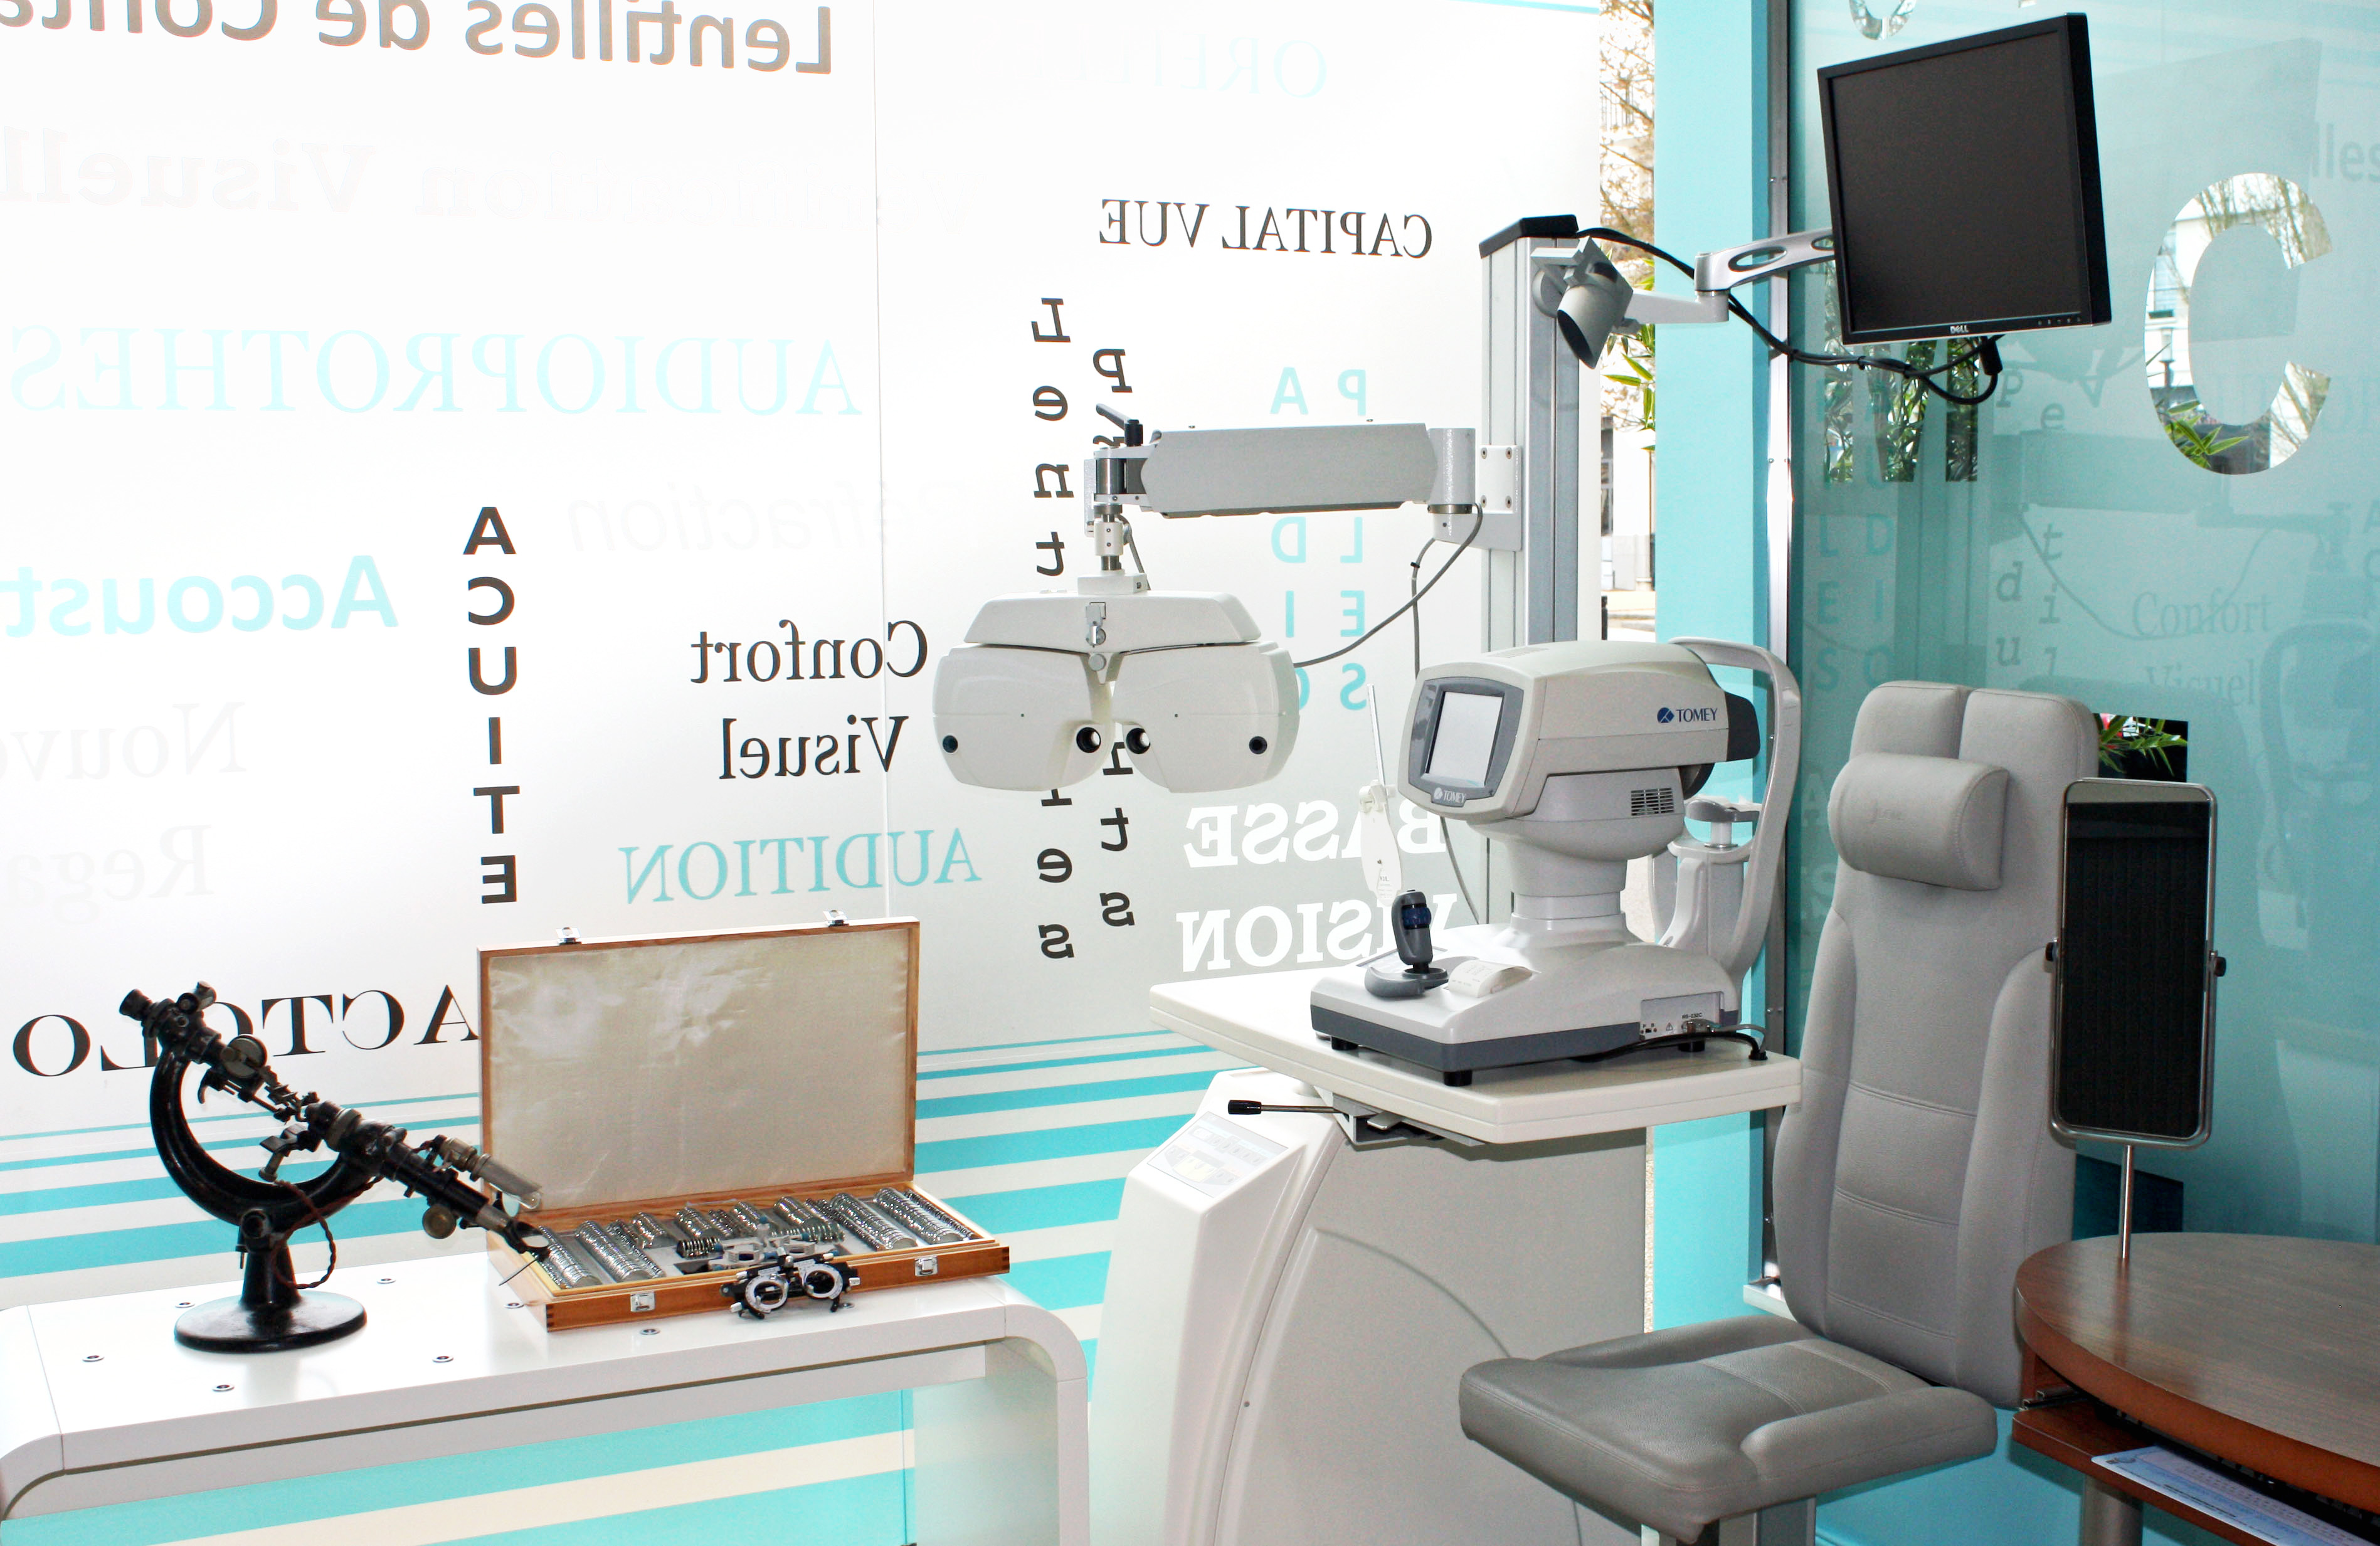 Opticien : OPTIQUE GUYANCOURT, 21 PLACE CENDRILLON, 78280 GUYANCOURT